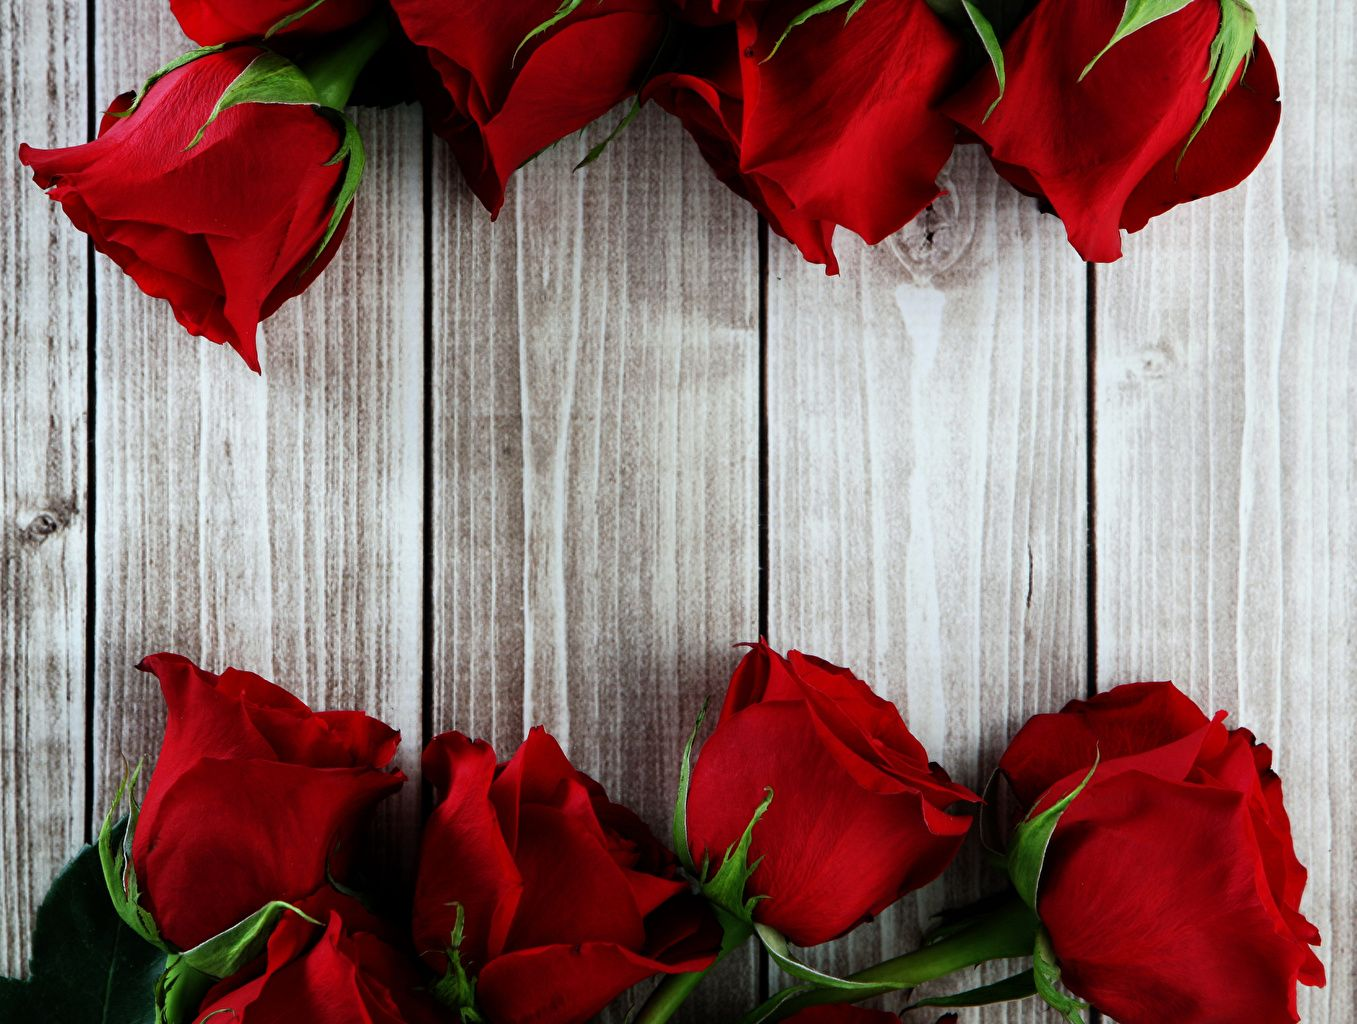 Wallpaper Red Roses Flowers Closeup Wood Planks Boards Roses Desktopwallpaper Wallpaper Valenti Red Roses Wallpaper Flower Background Wallpaper Red Flowers